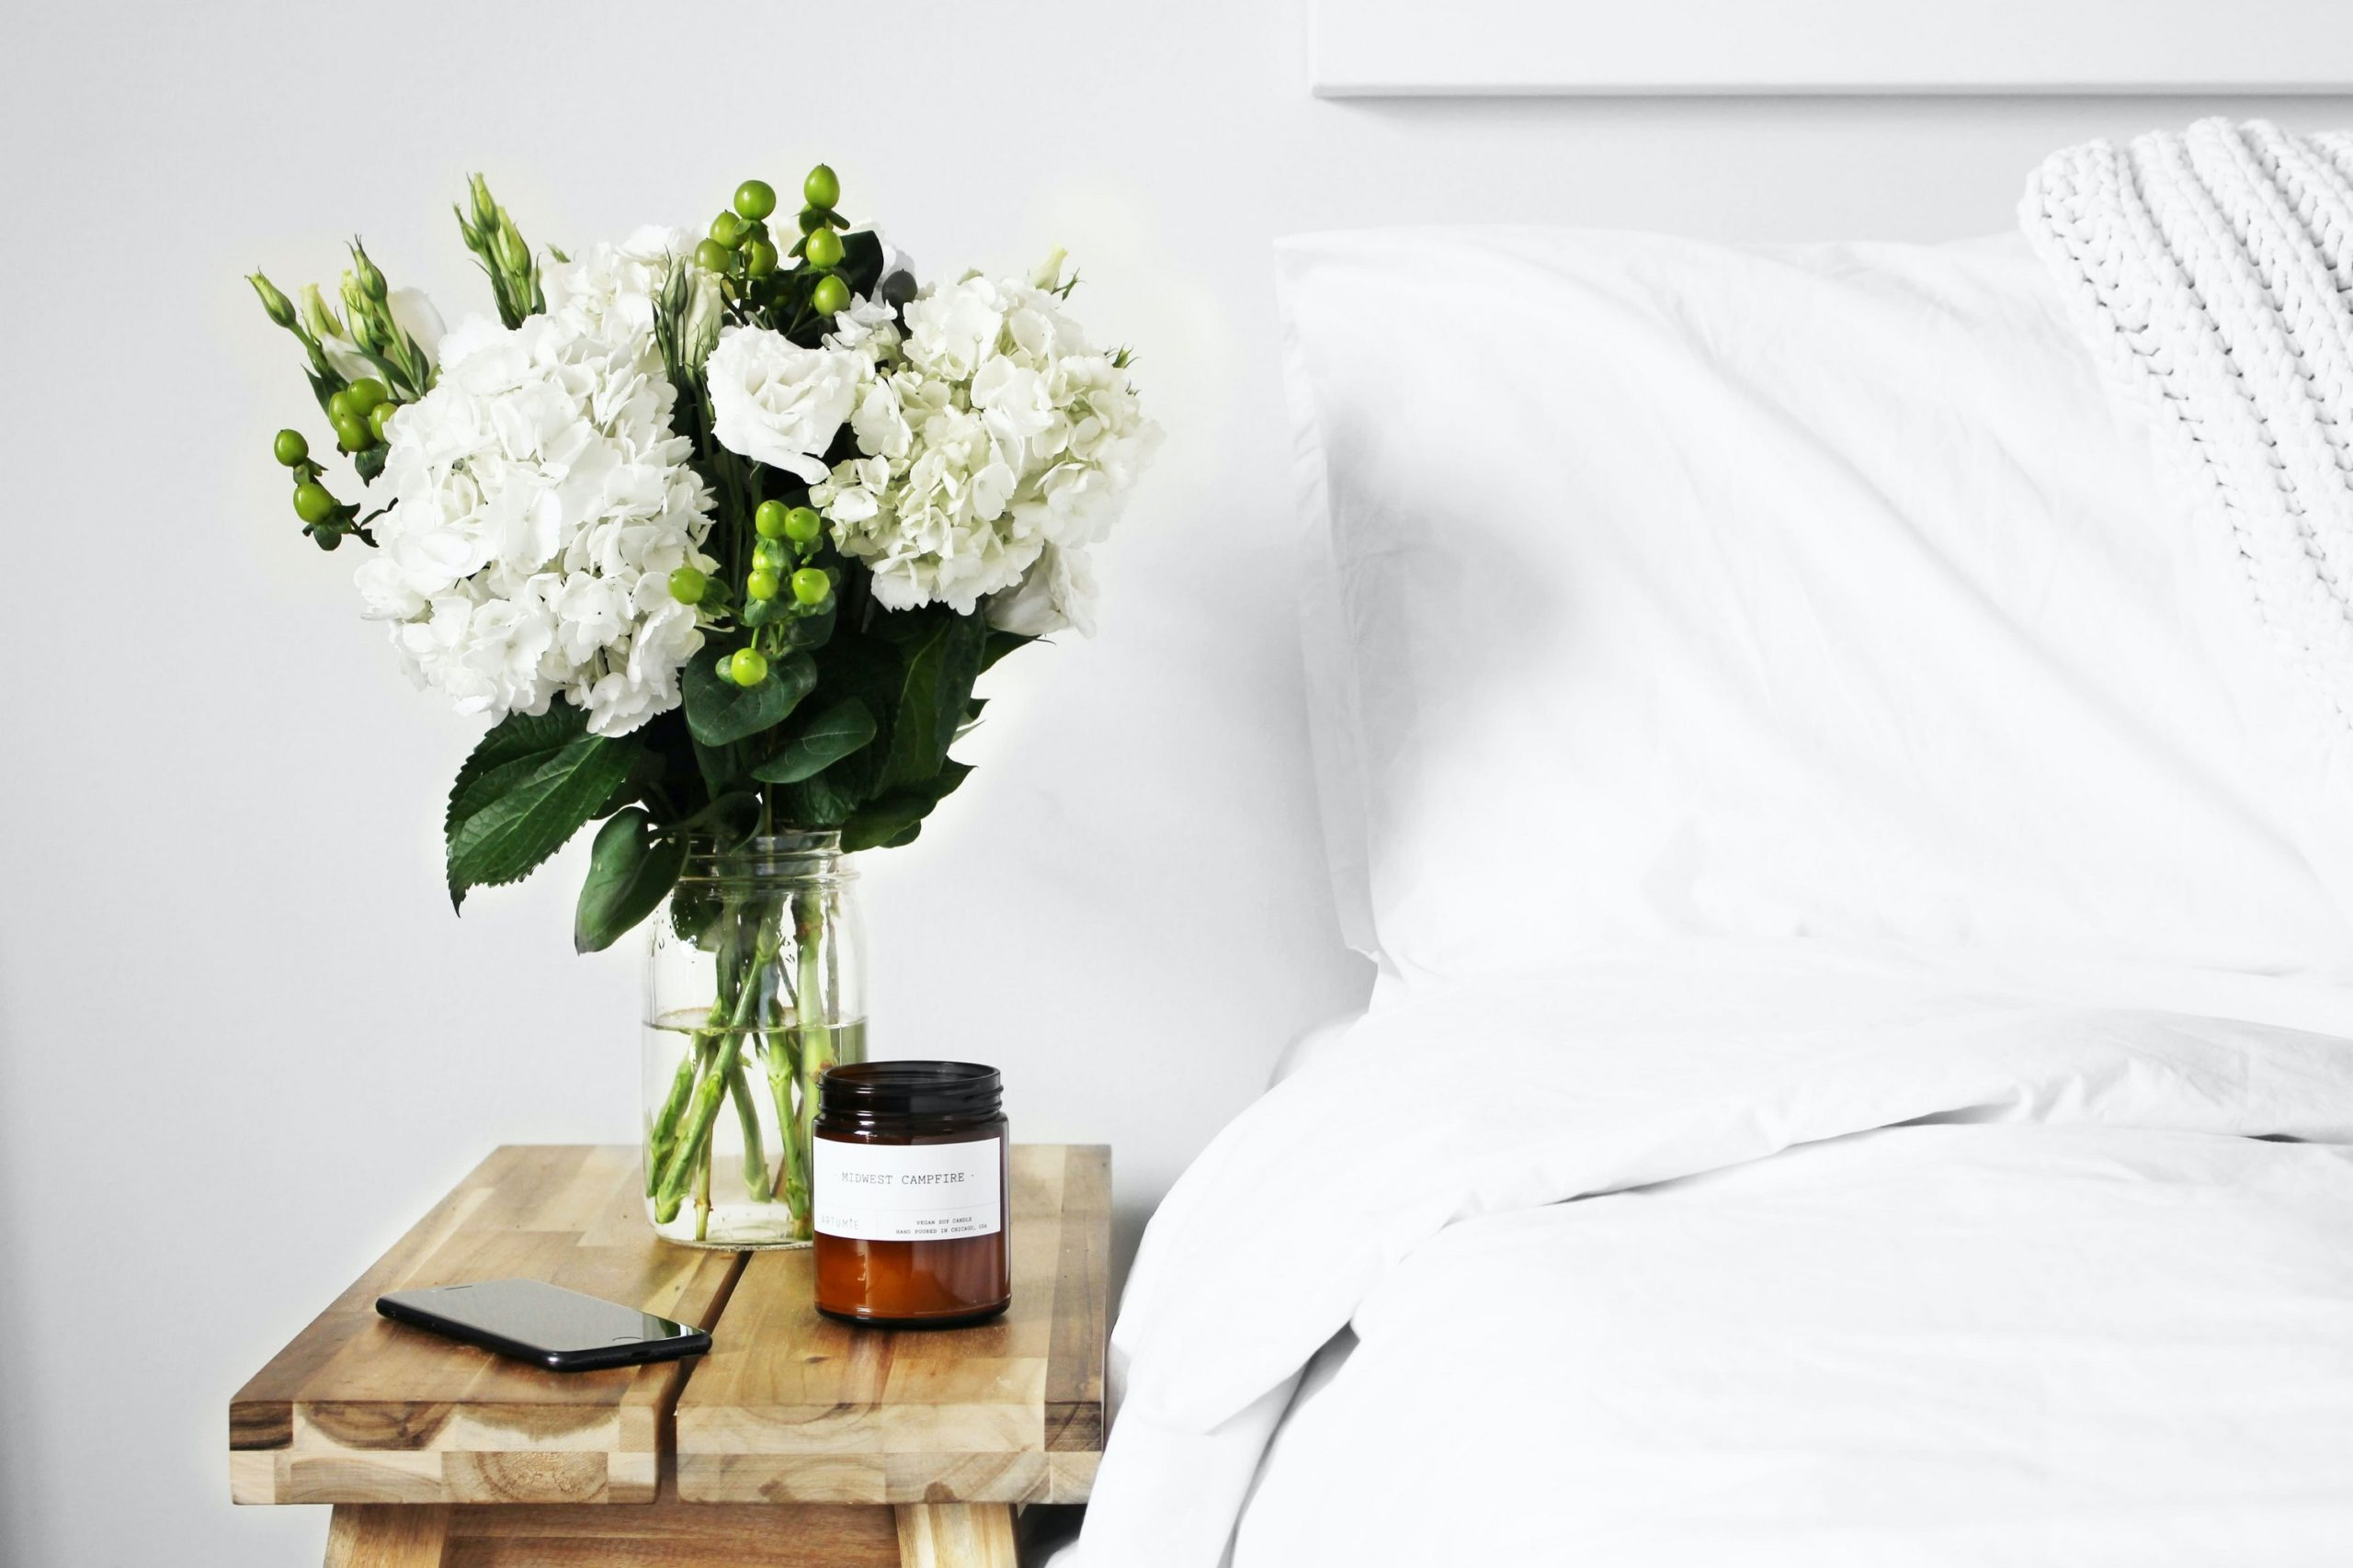 bed, with white pillow, next to a vase of flowers and a candle on a wooden table.